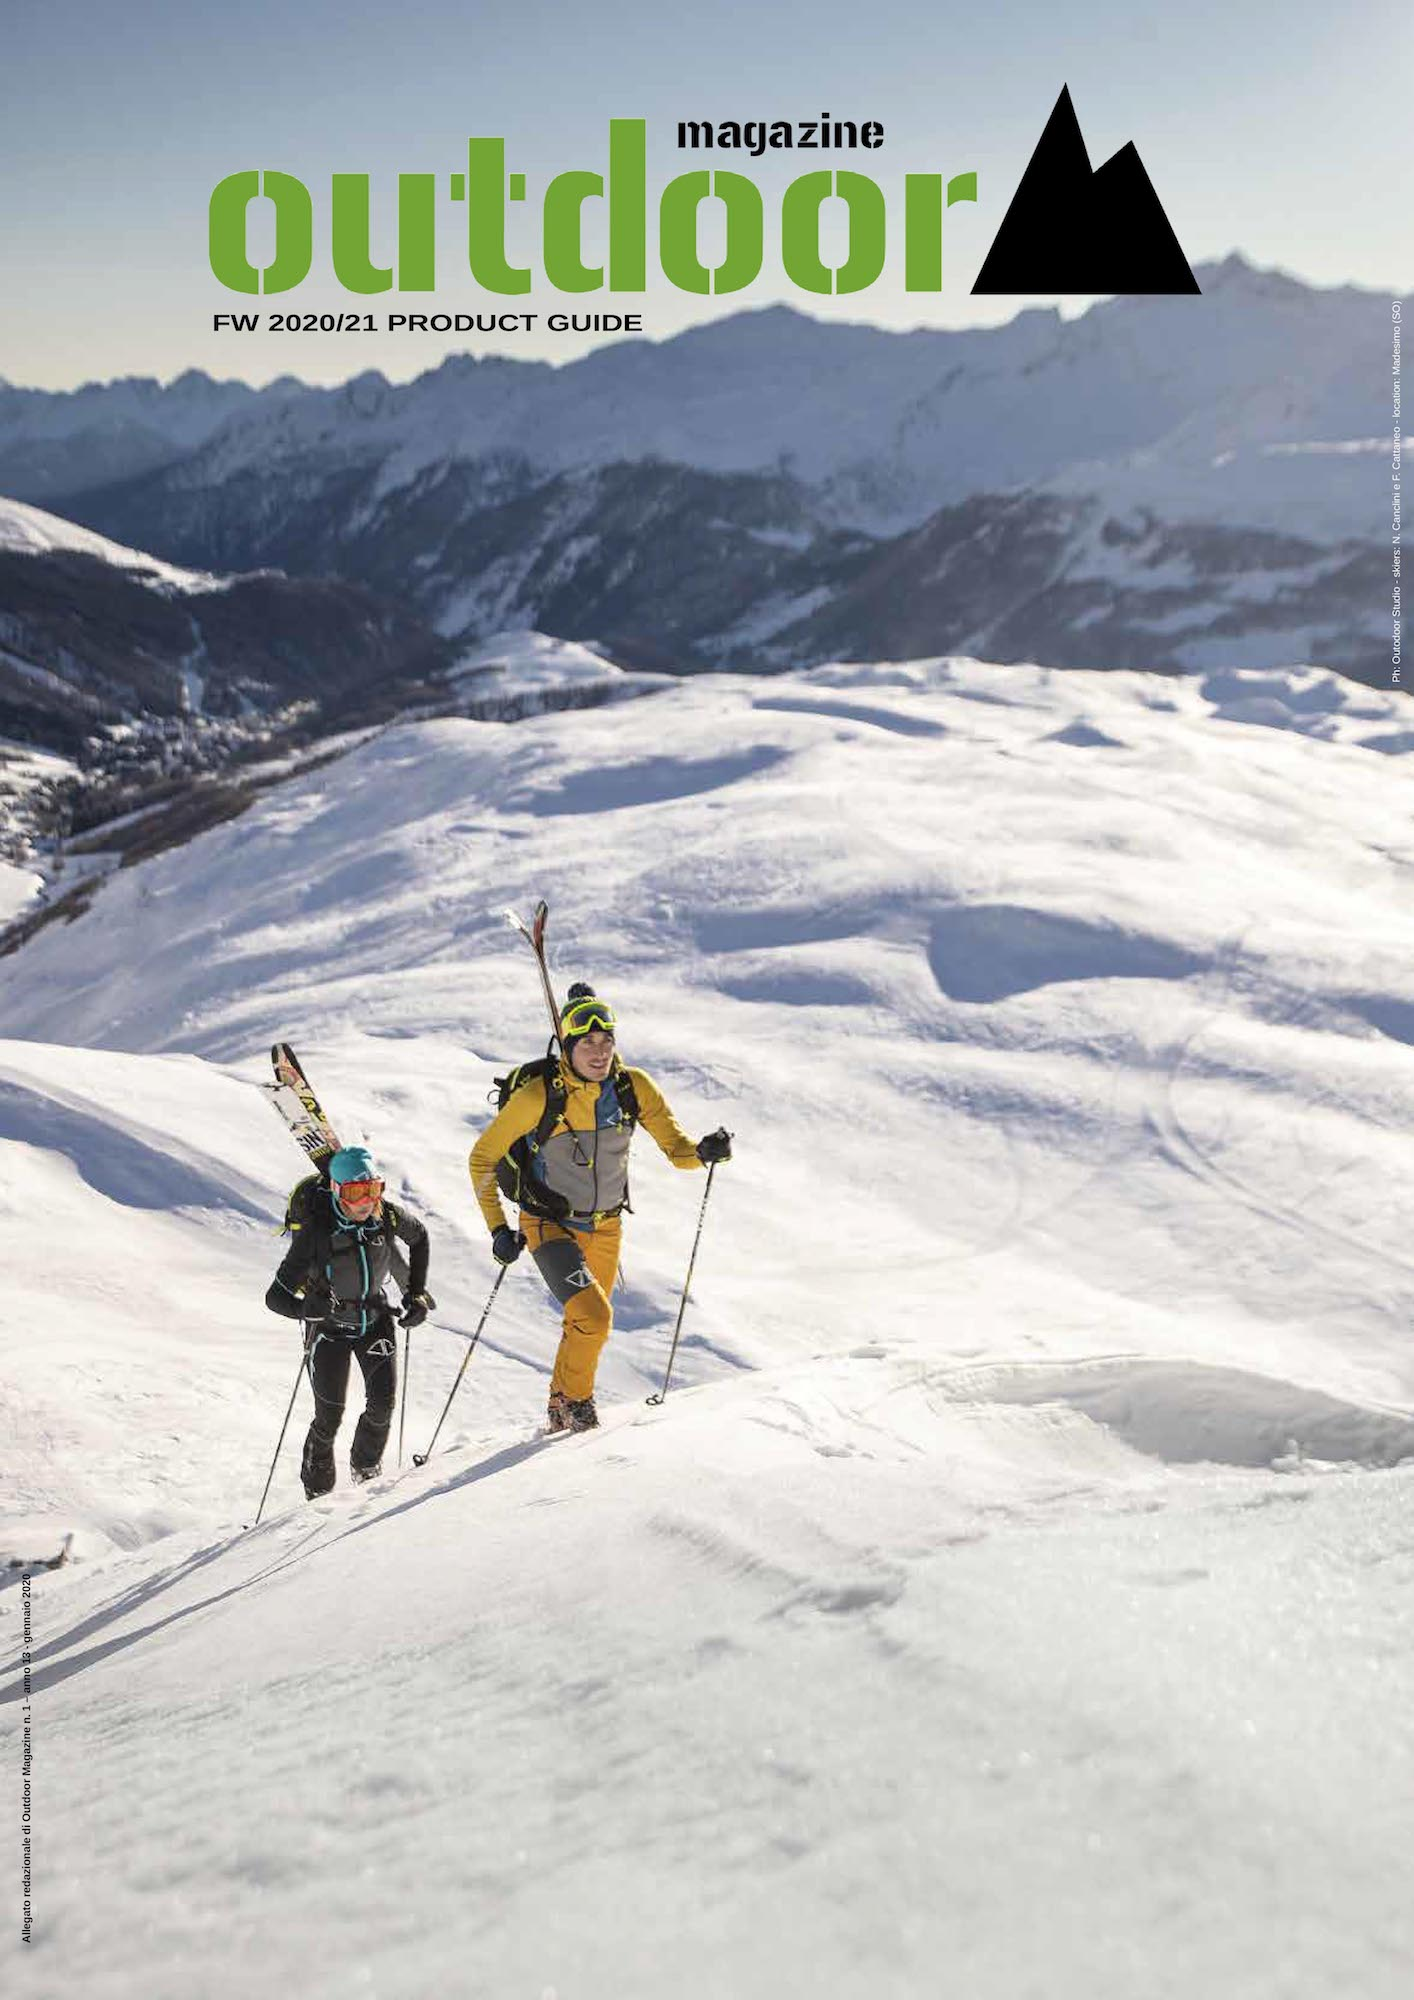 Outdoor Mag_Product Guide _1_2020